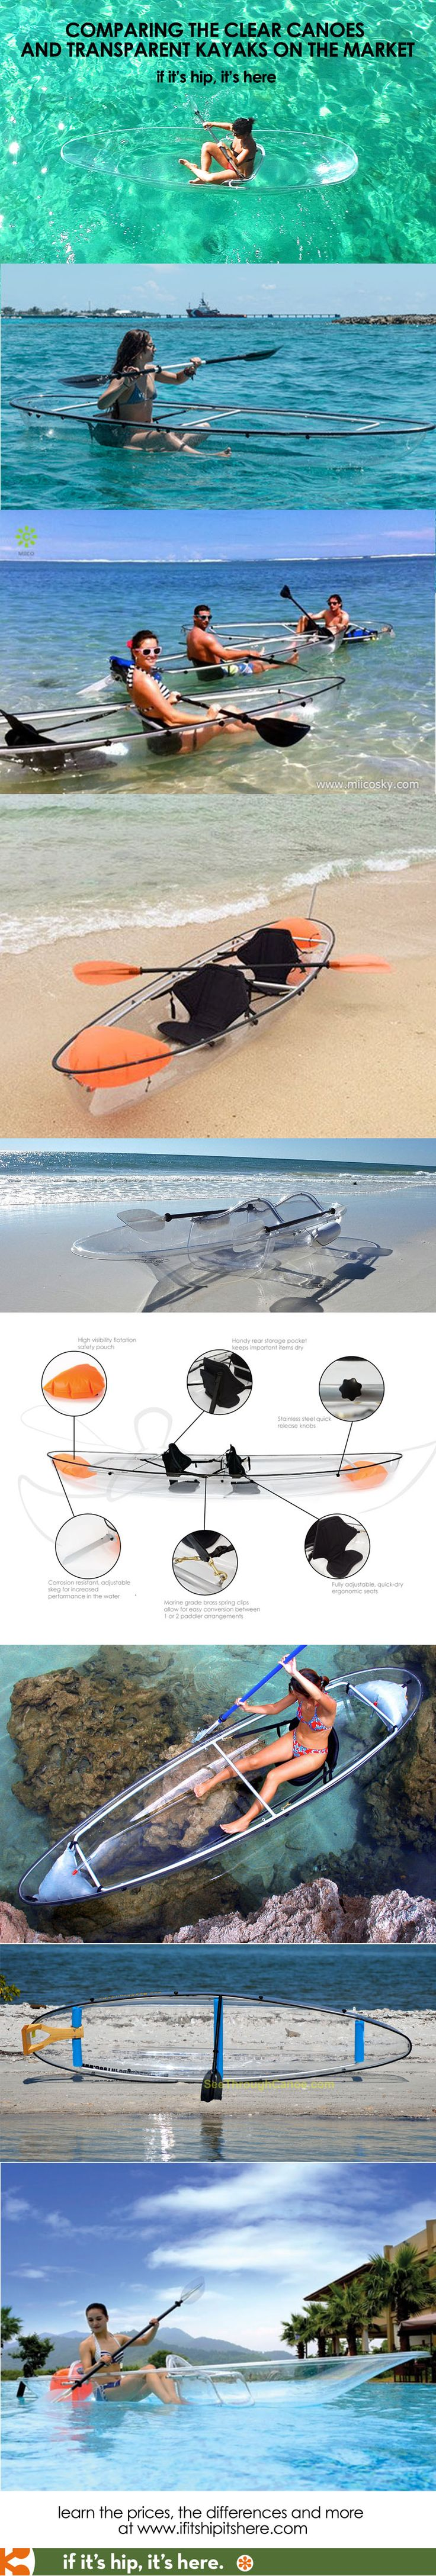 Looking for a clear canoe or transparent kayak? here's all you need to know. http://www.ifitshipitshere.com/totally-transparent-canoes-and-kayaks/